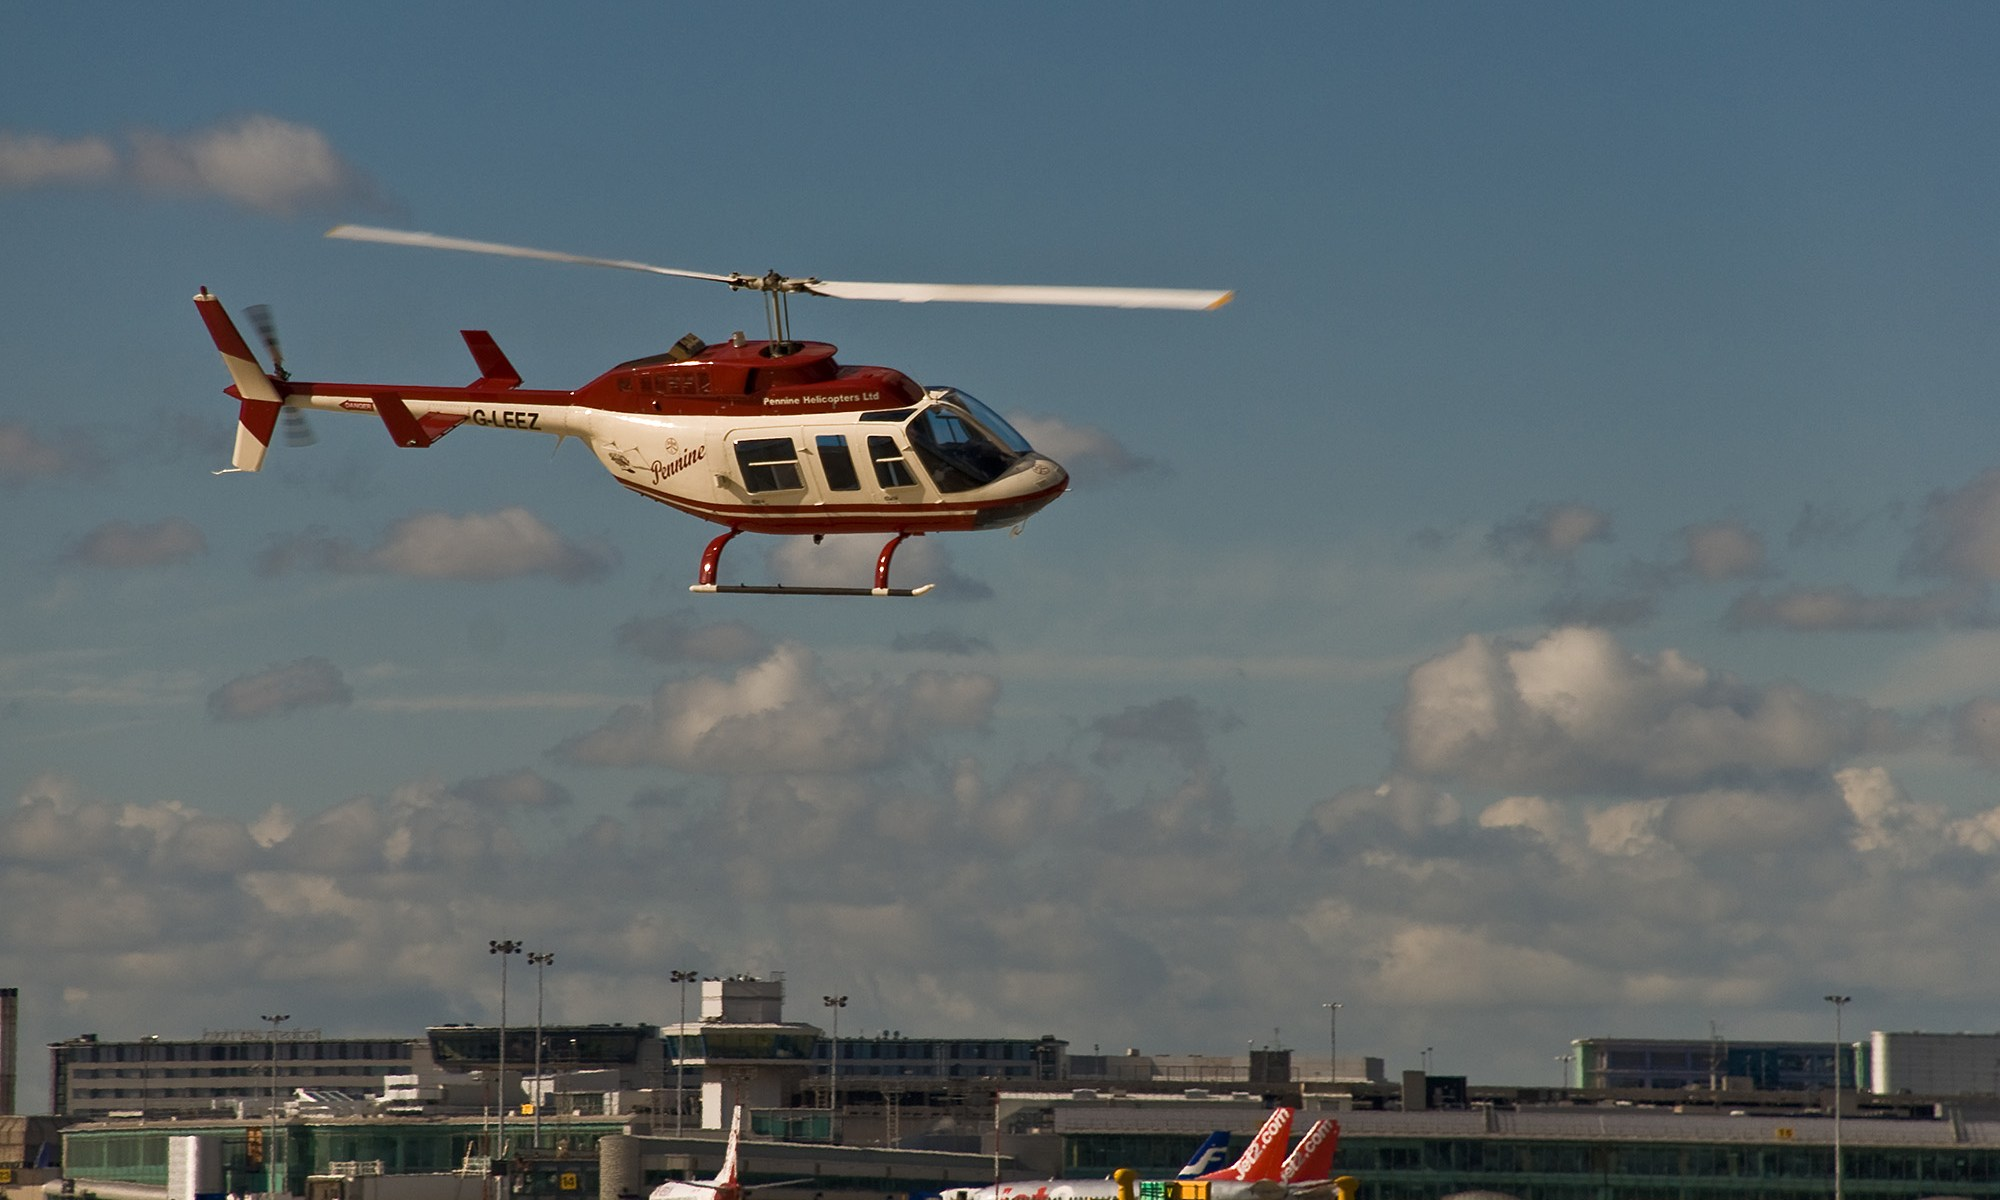 Bell Longranger Helicopter at Manchester Airport